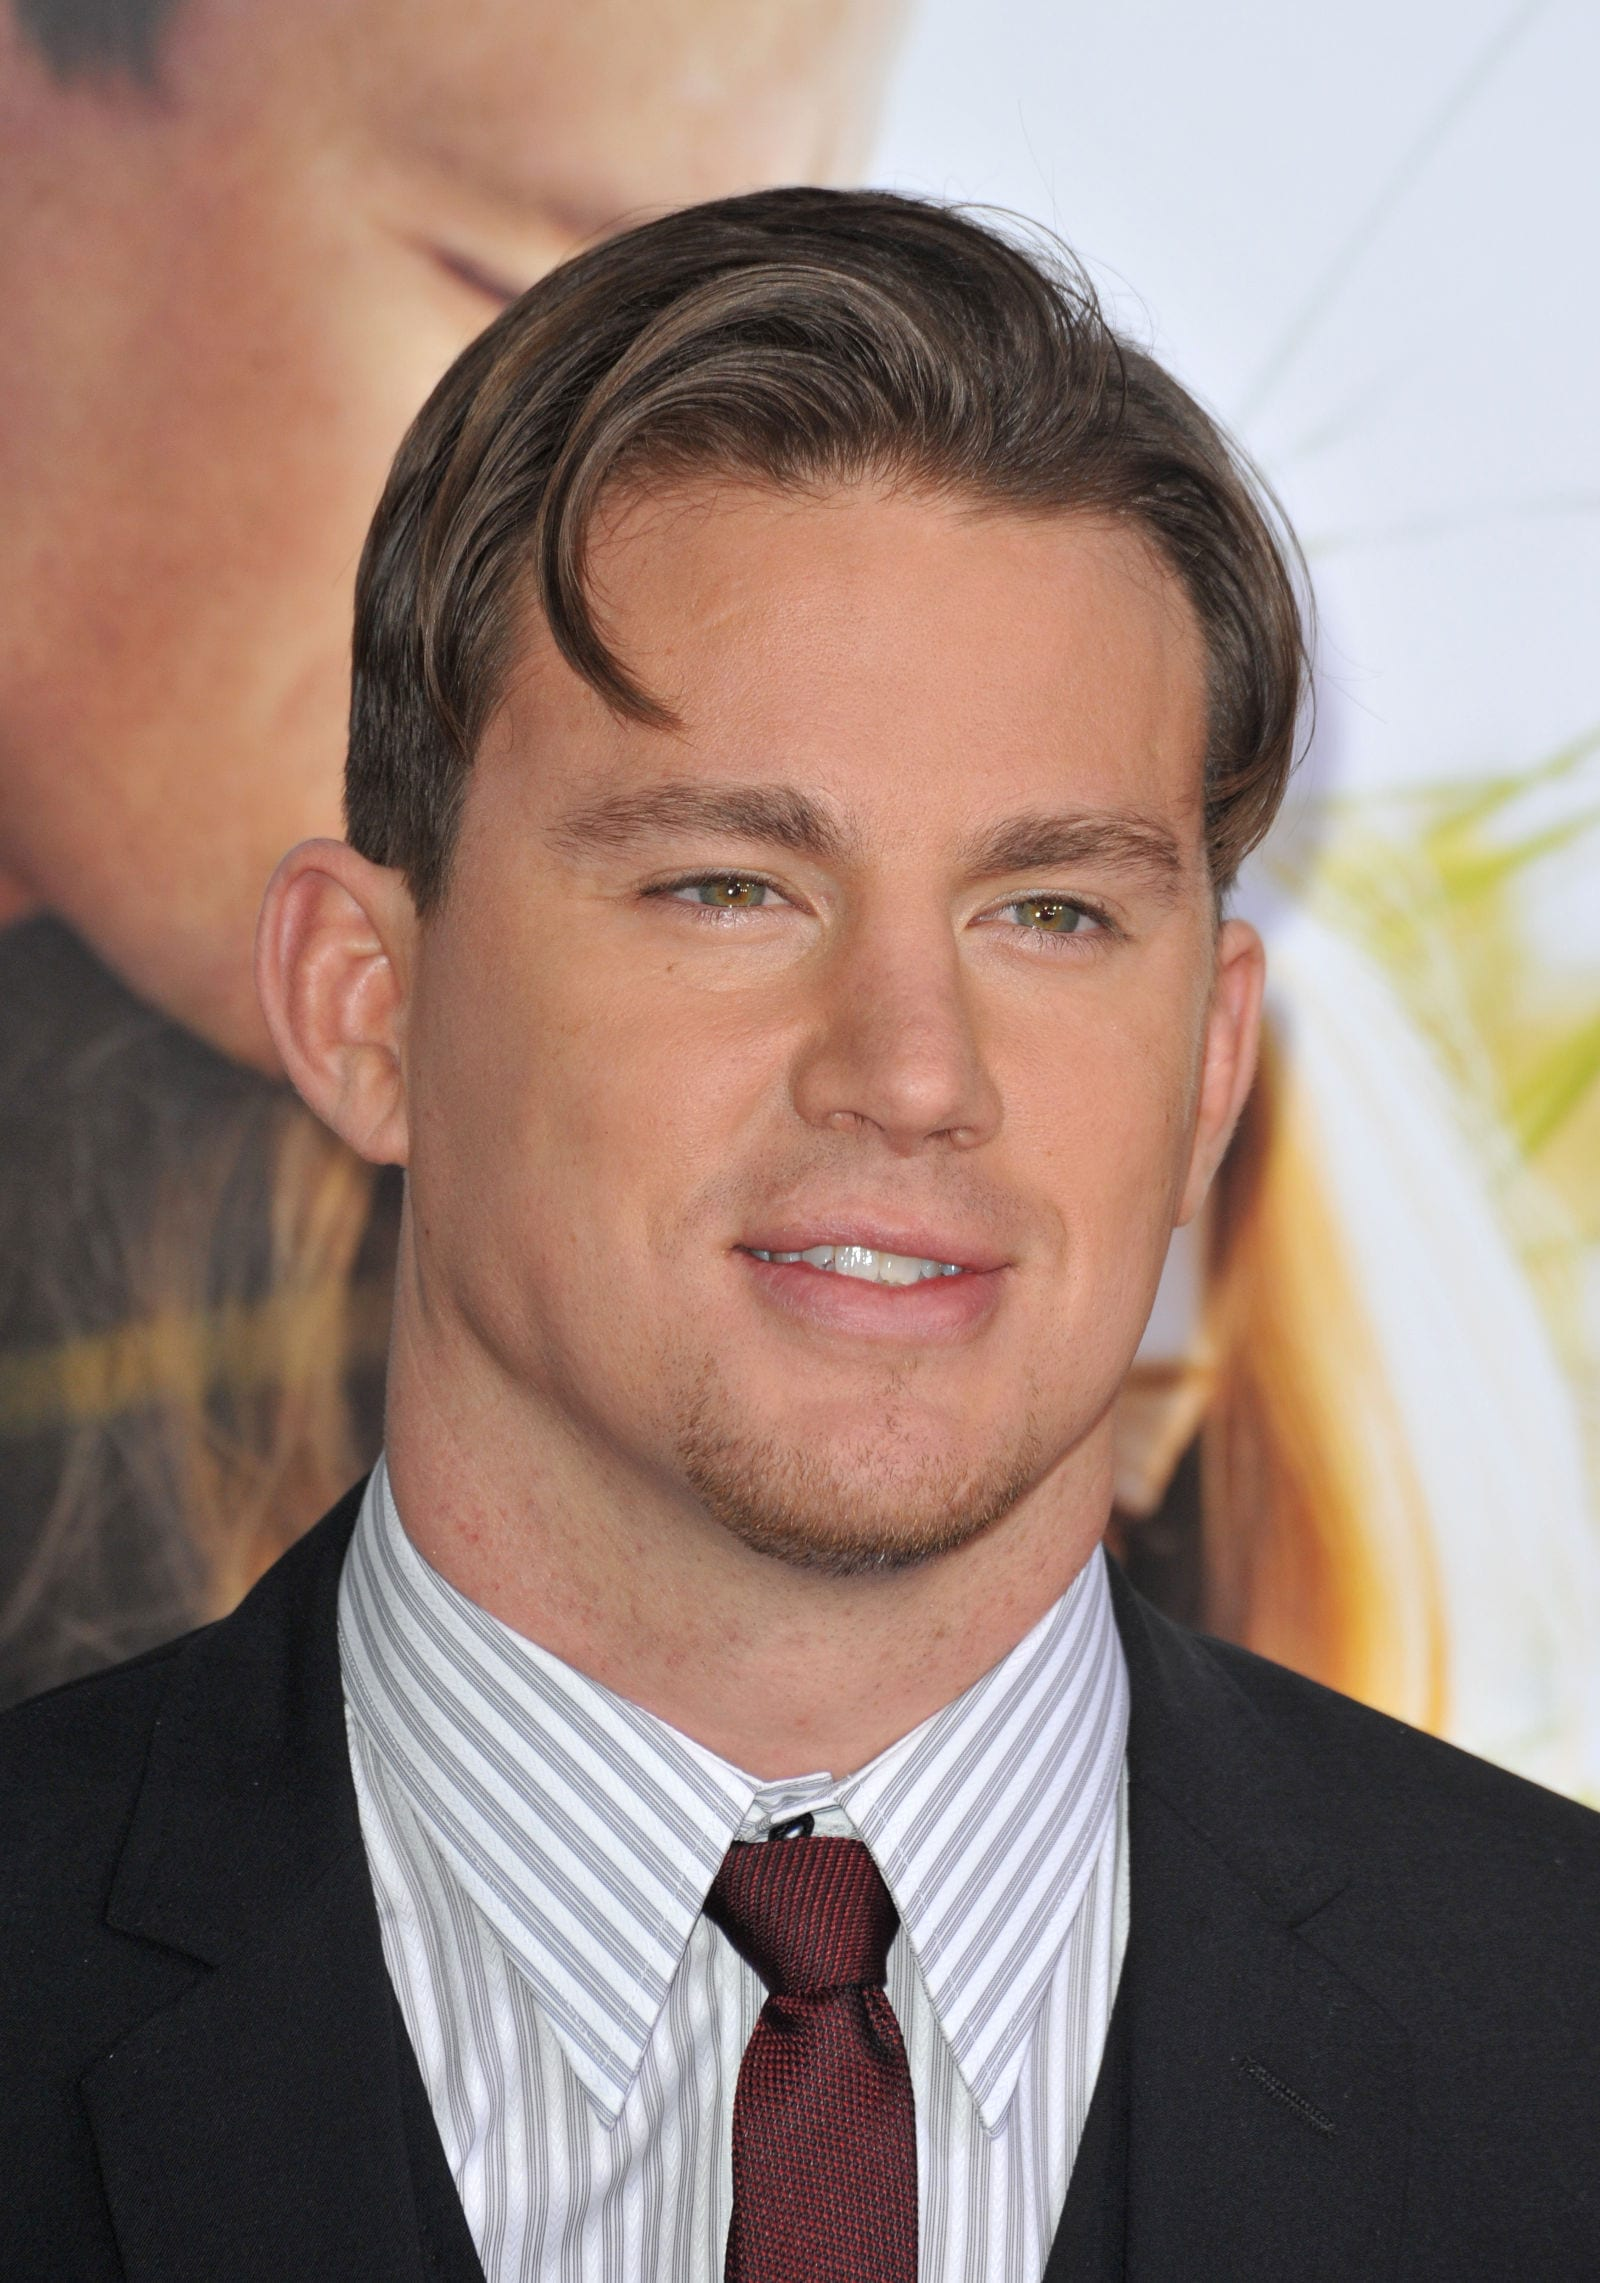 Channing Tatum elephant trunk hairstyle by Featureflash Photo Agency